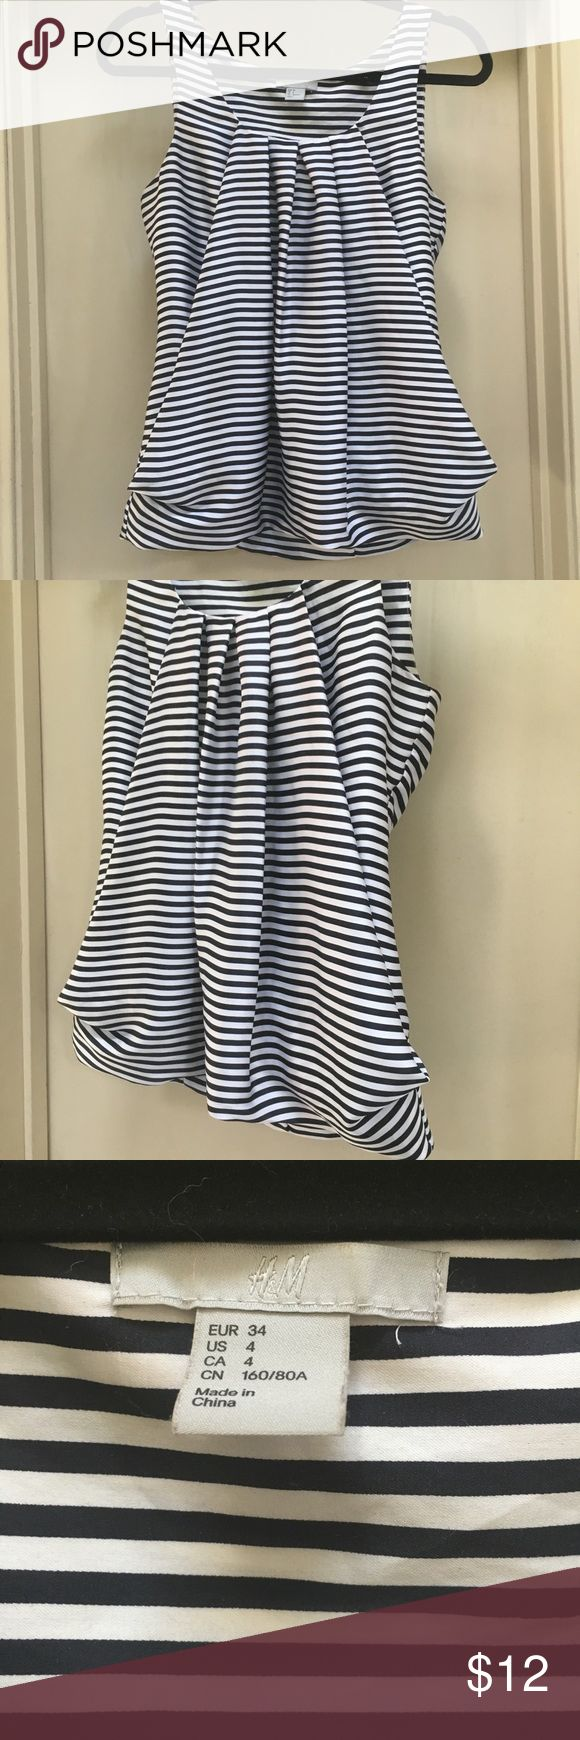 *Charity* H&M Draped Striped Sleeveless Blouse 4 ~* This sell helps benefit the ongoing needs of WV Flood Victims who lost their homes in the devastating floods of 2016~* Excellent condition ~ size 4 ~ very unique and interesting draping gives it volume ~ H & M ~ Balloon hem ~ H&M Tops Blouses